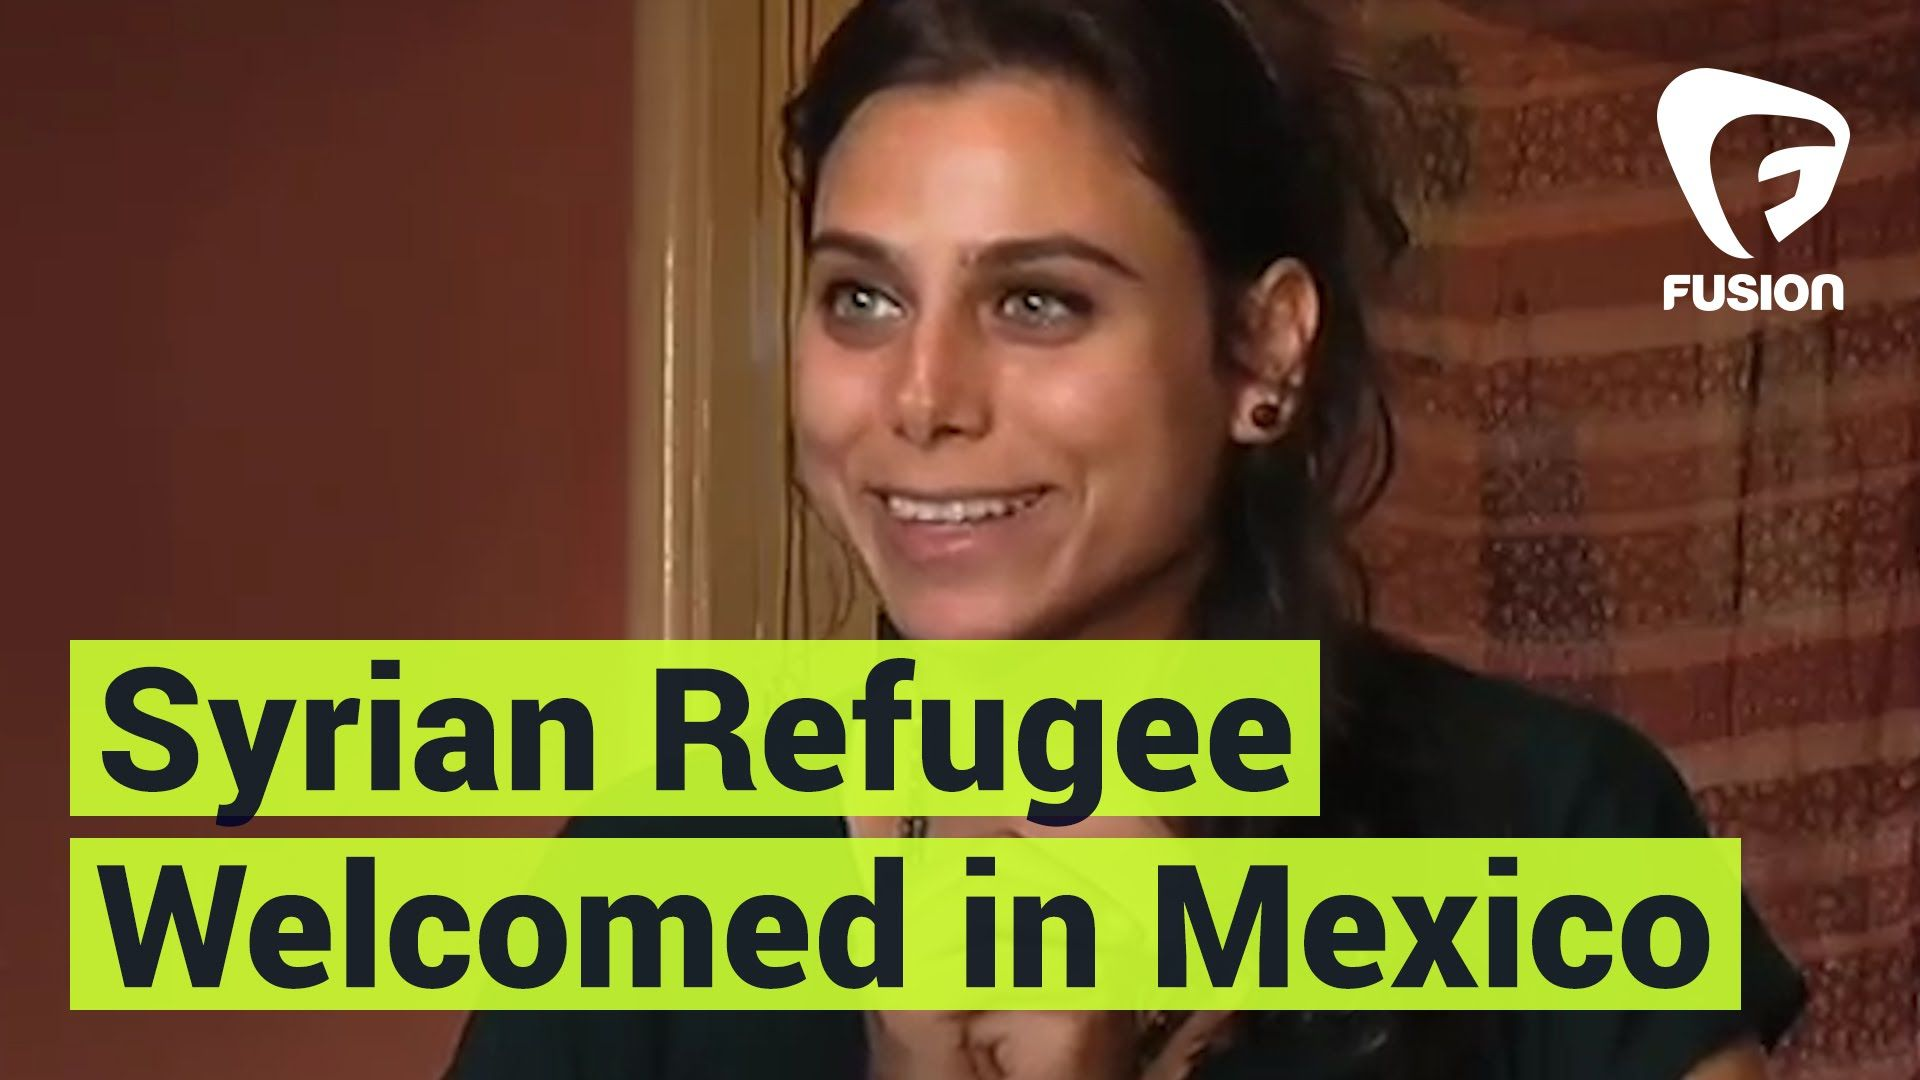 Syrian Refugee Welcomed in Mexico